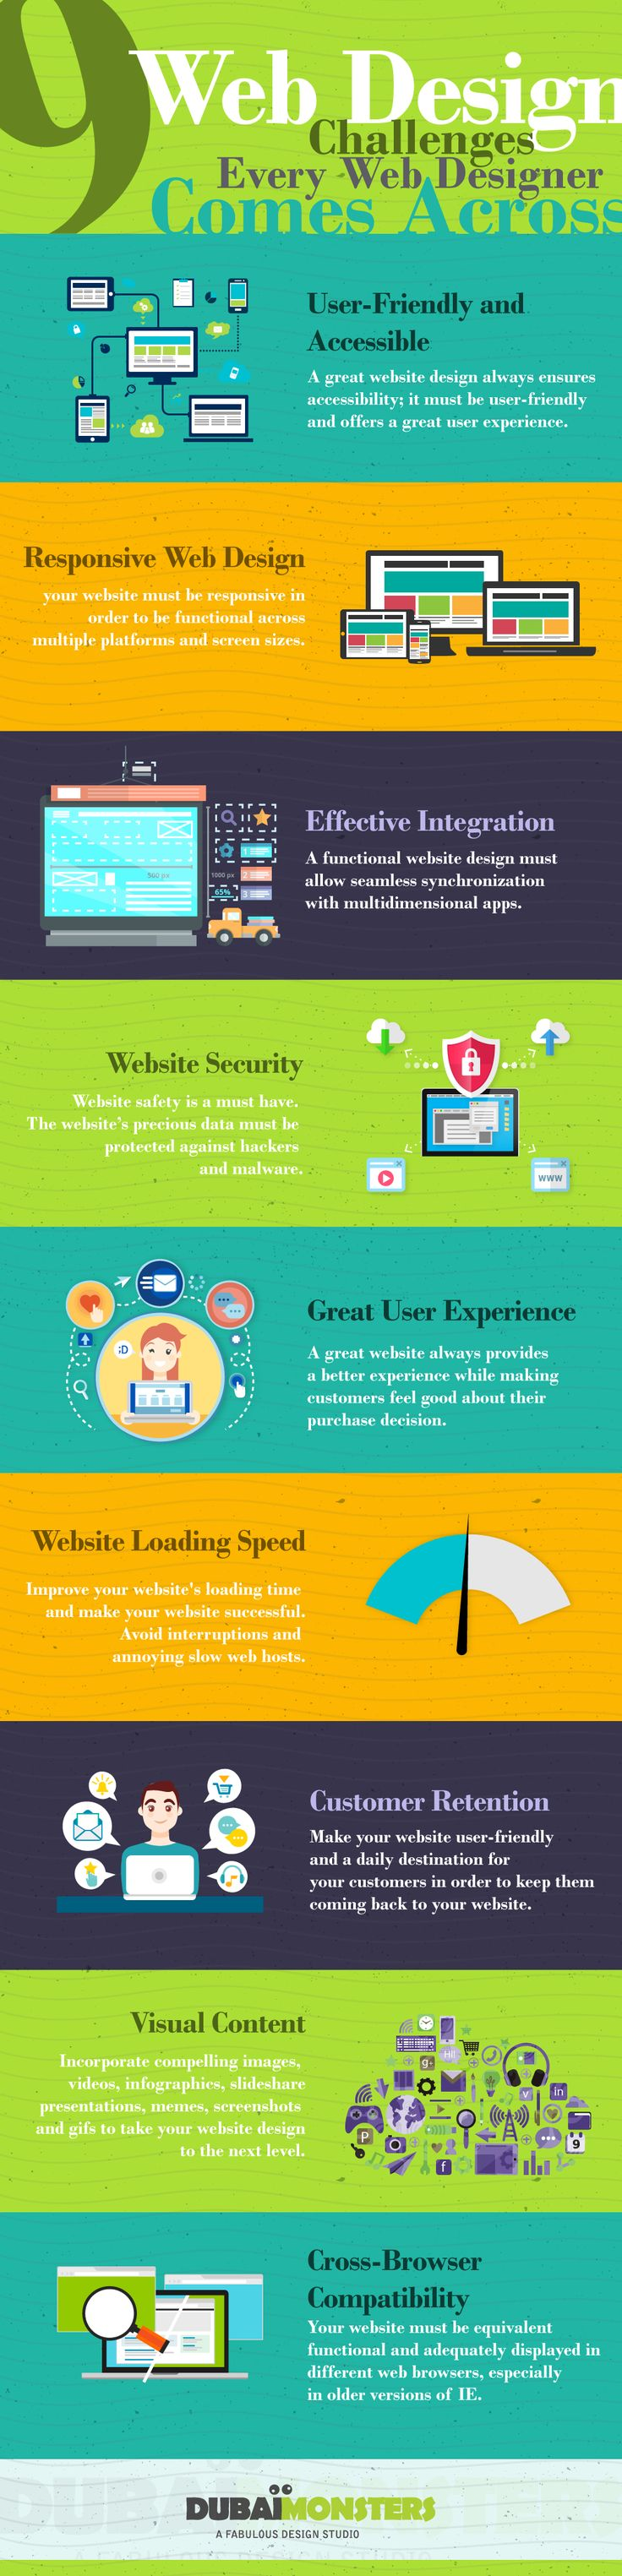 9 Web Design Challenges Every Web Designer Comes Across #Infographic #WebDesign #Web